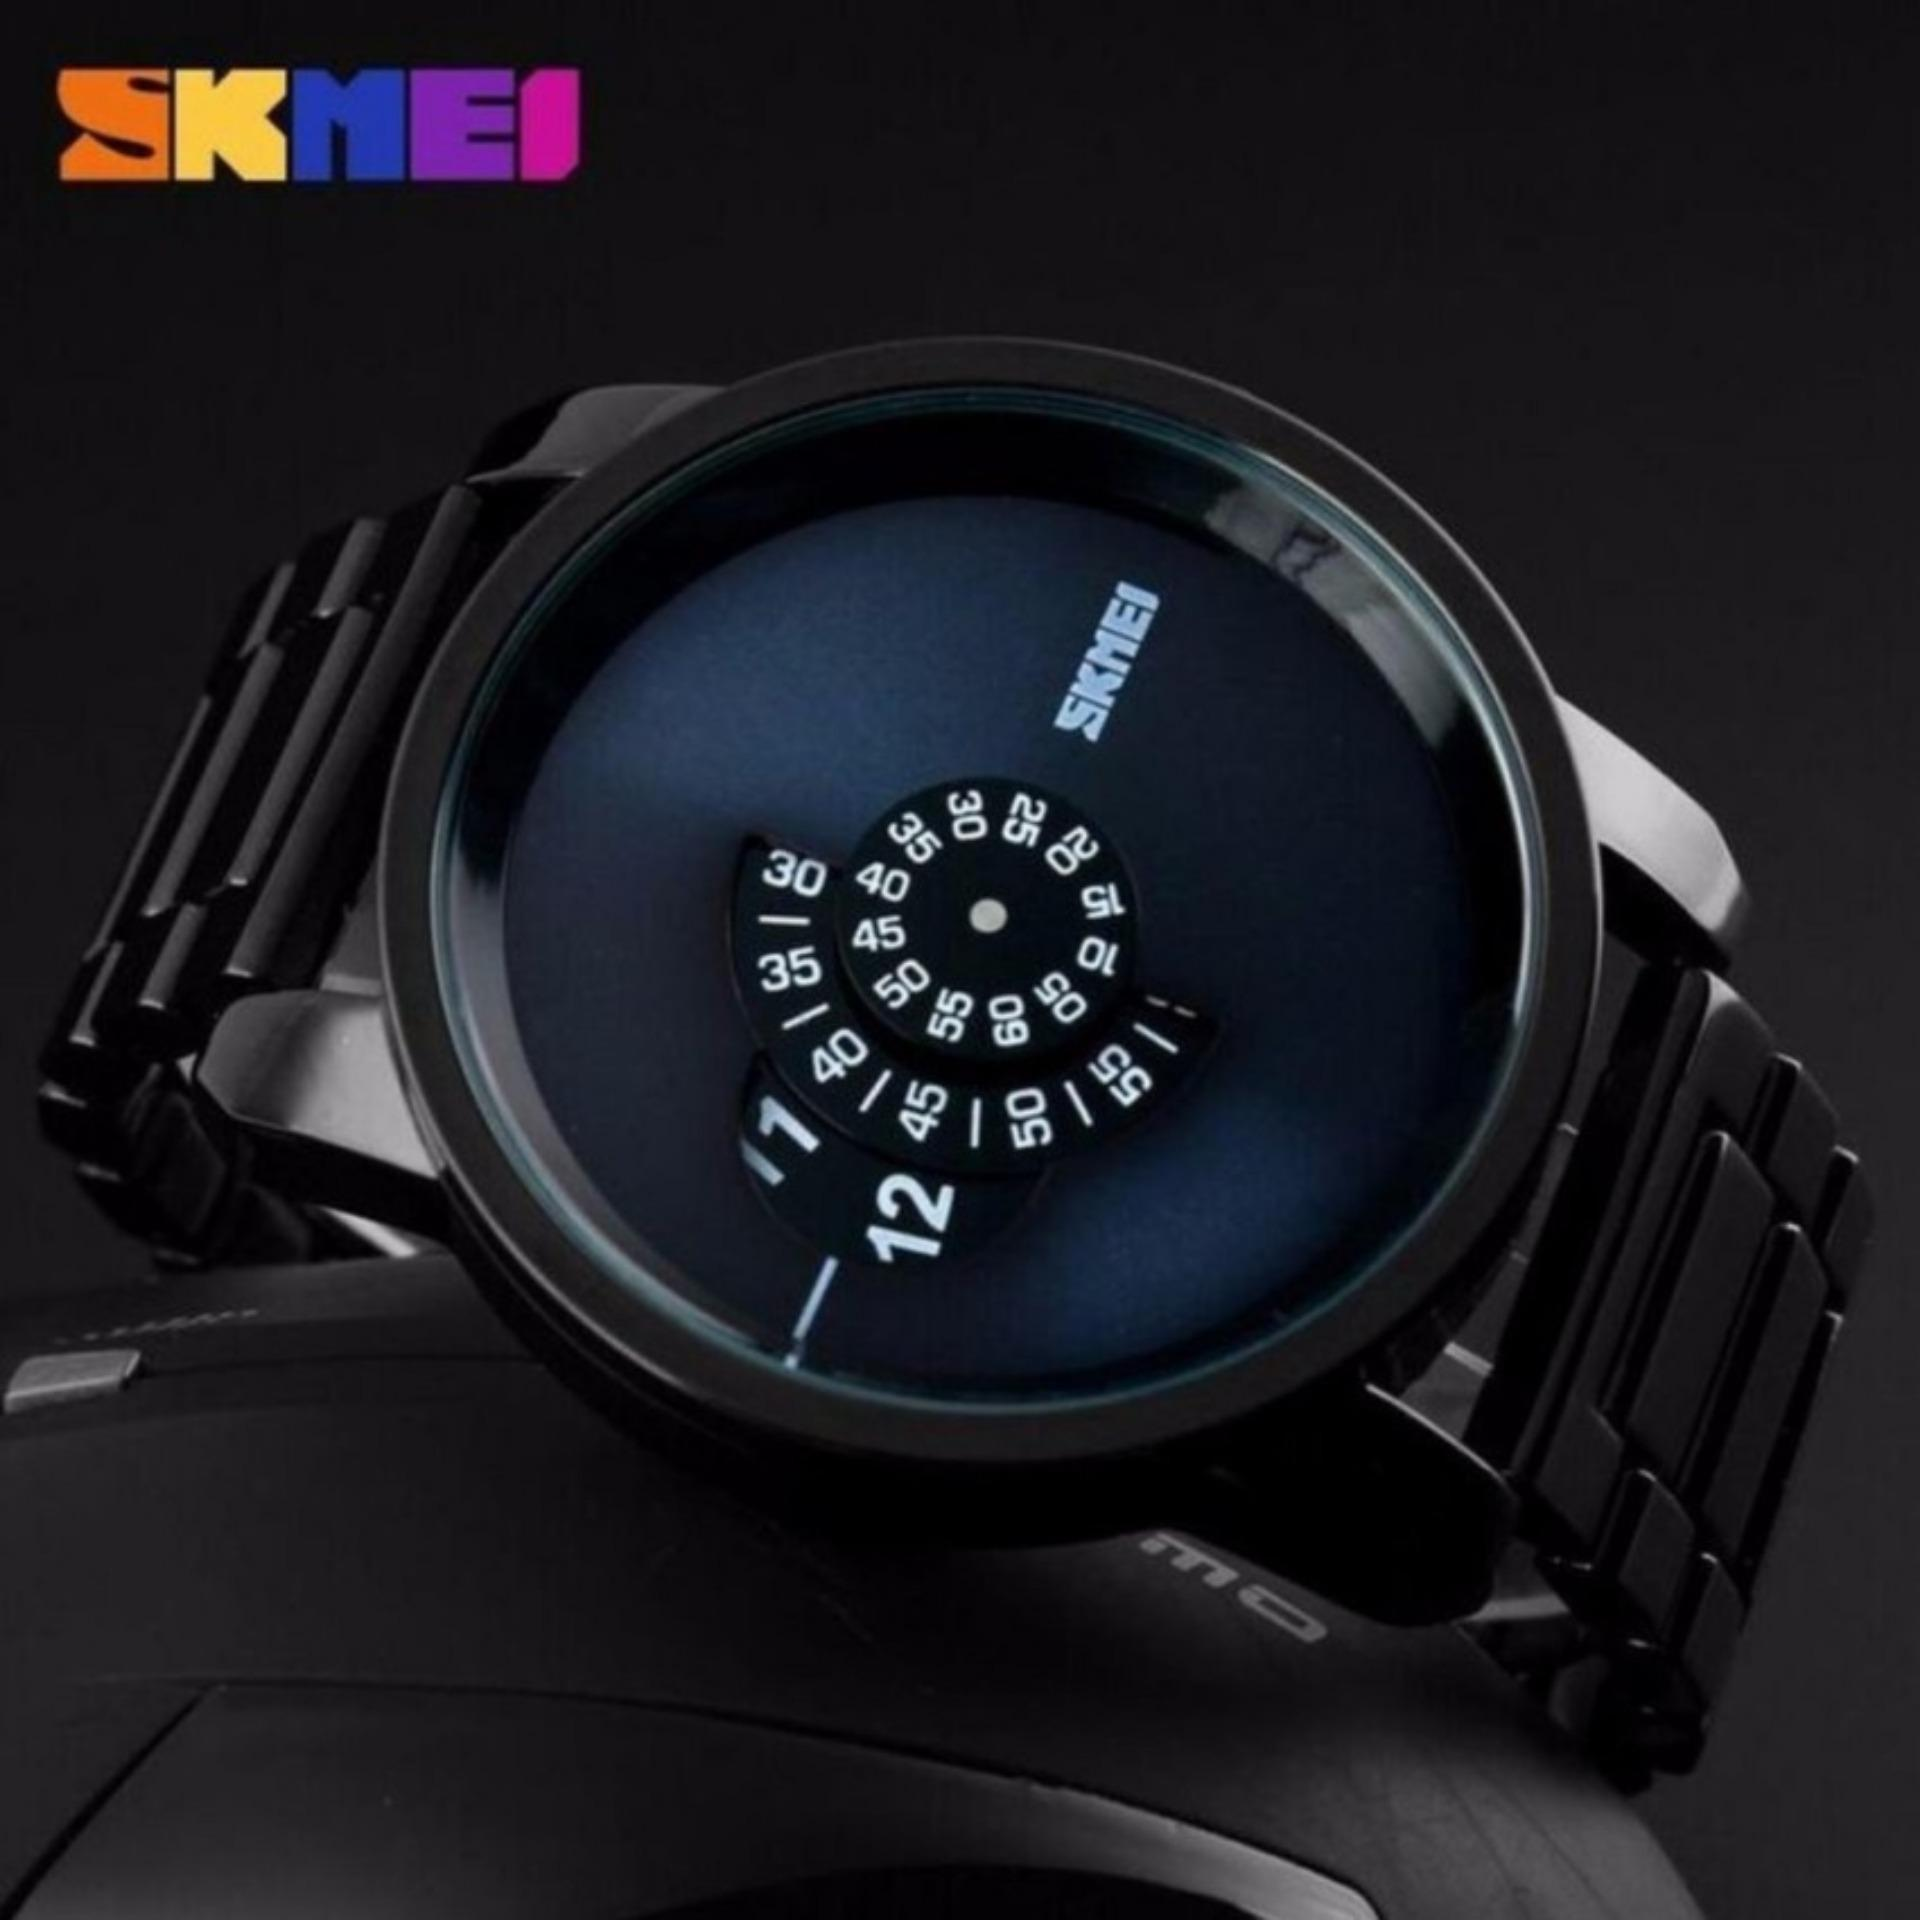 Skmei Casio Man Sport Led Watch Anti Air Water Resistant Jam Tangan Periksa Calvin Klein Quartz